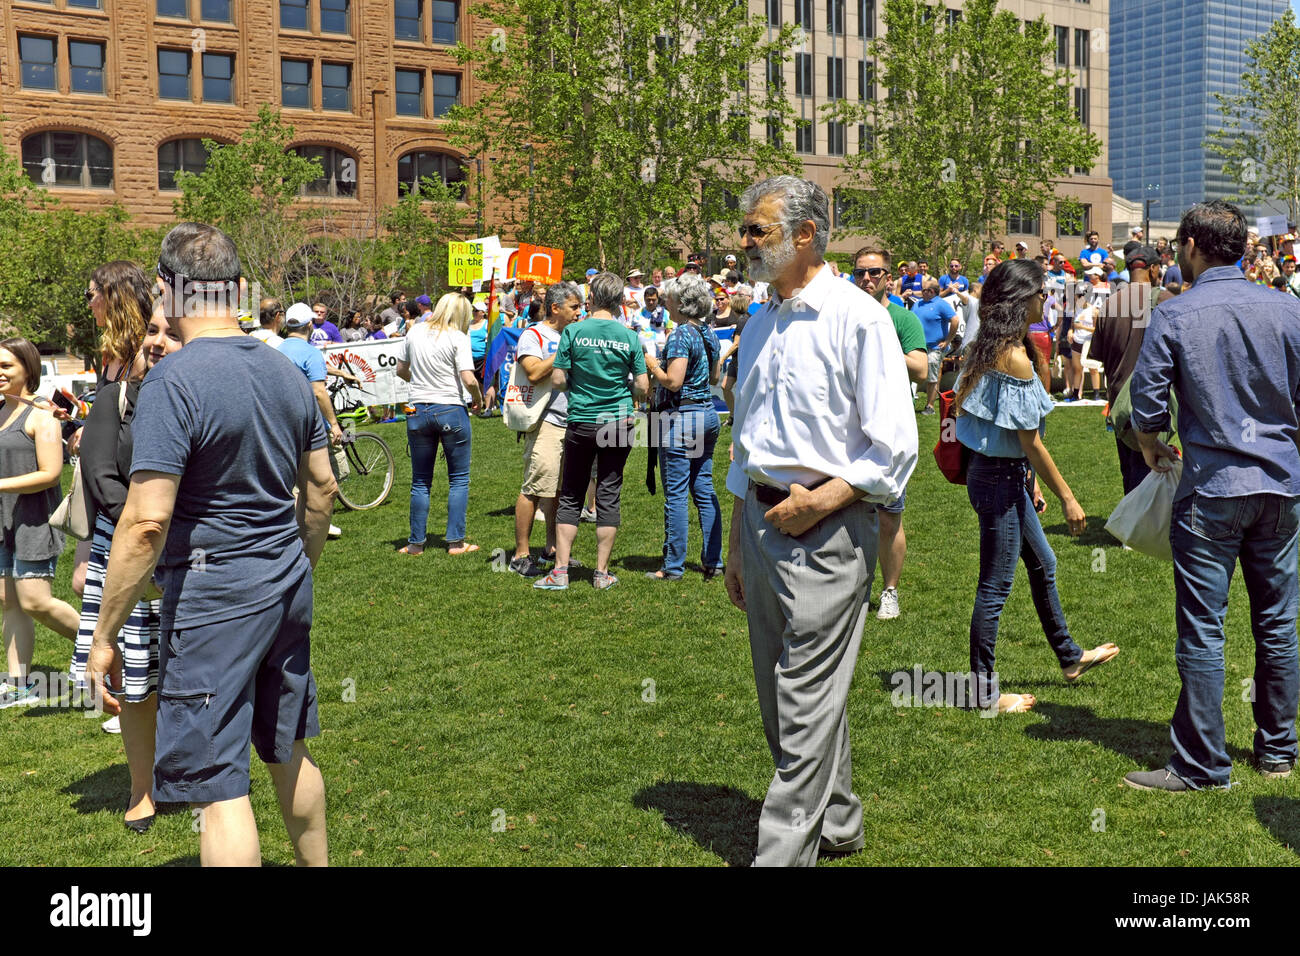 Cleveland Mayor Frank Jackson visits attendees of a GLBT Pride event in downtown Cleveland, Ohio, USA. - Stock Image